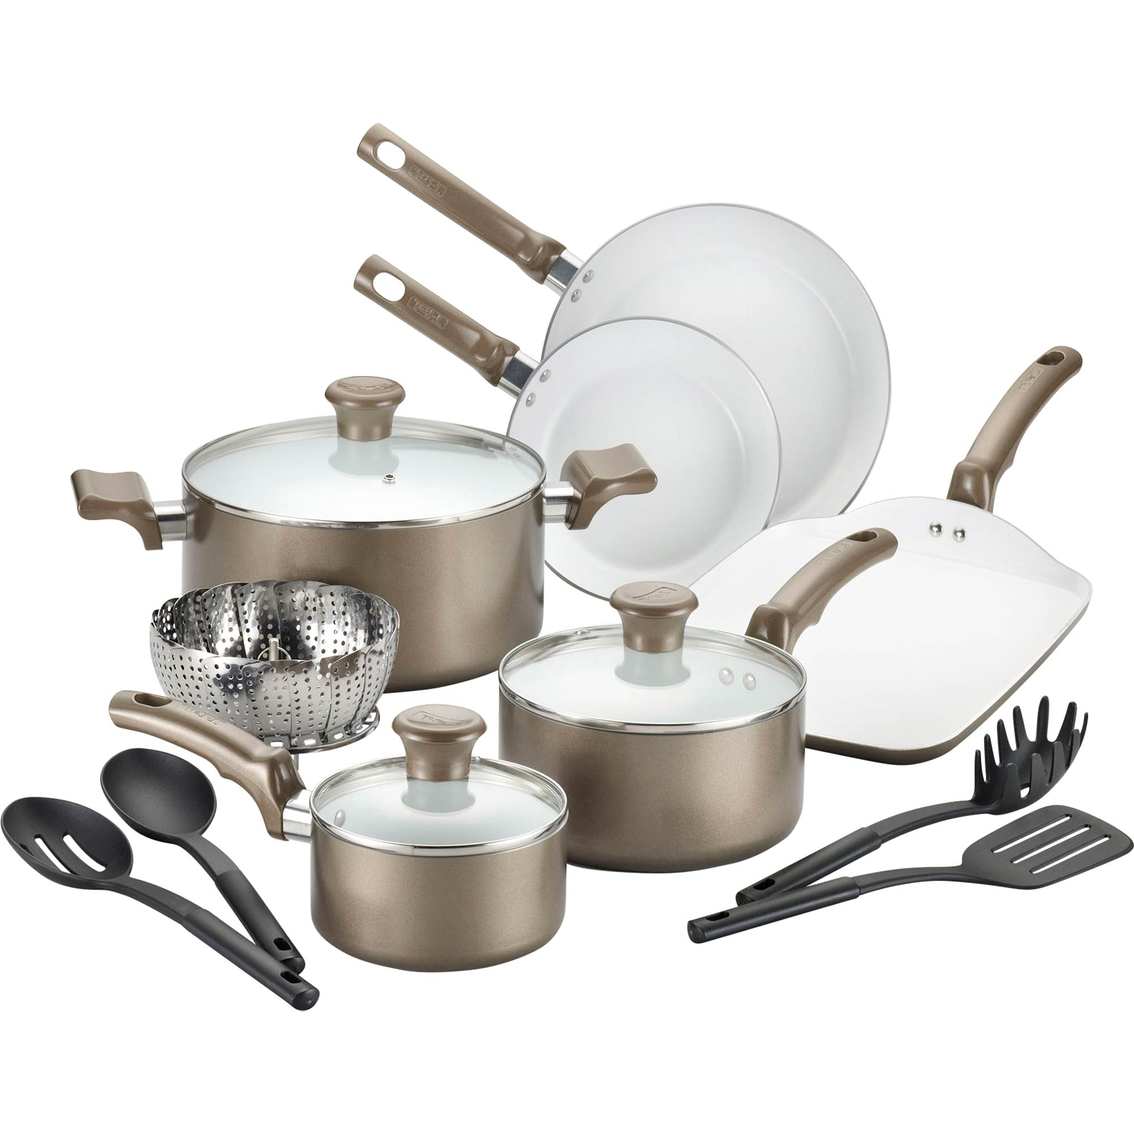 T Fal Celebrate 14 Pc Ceramic Cookware Set Non Stick